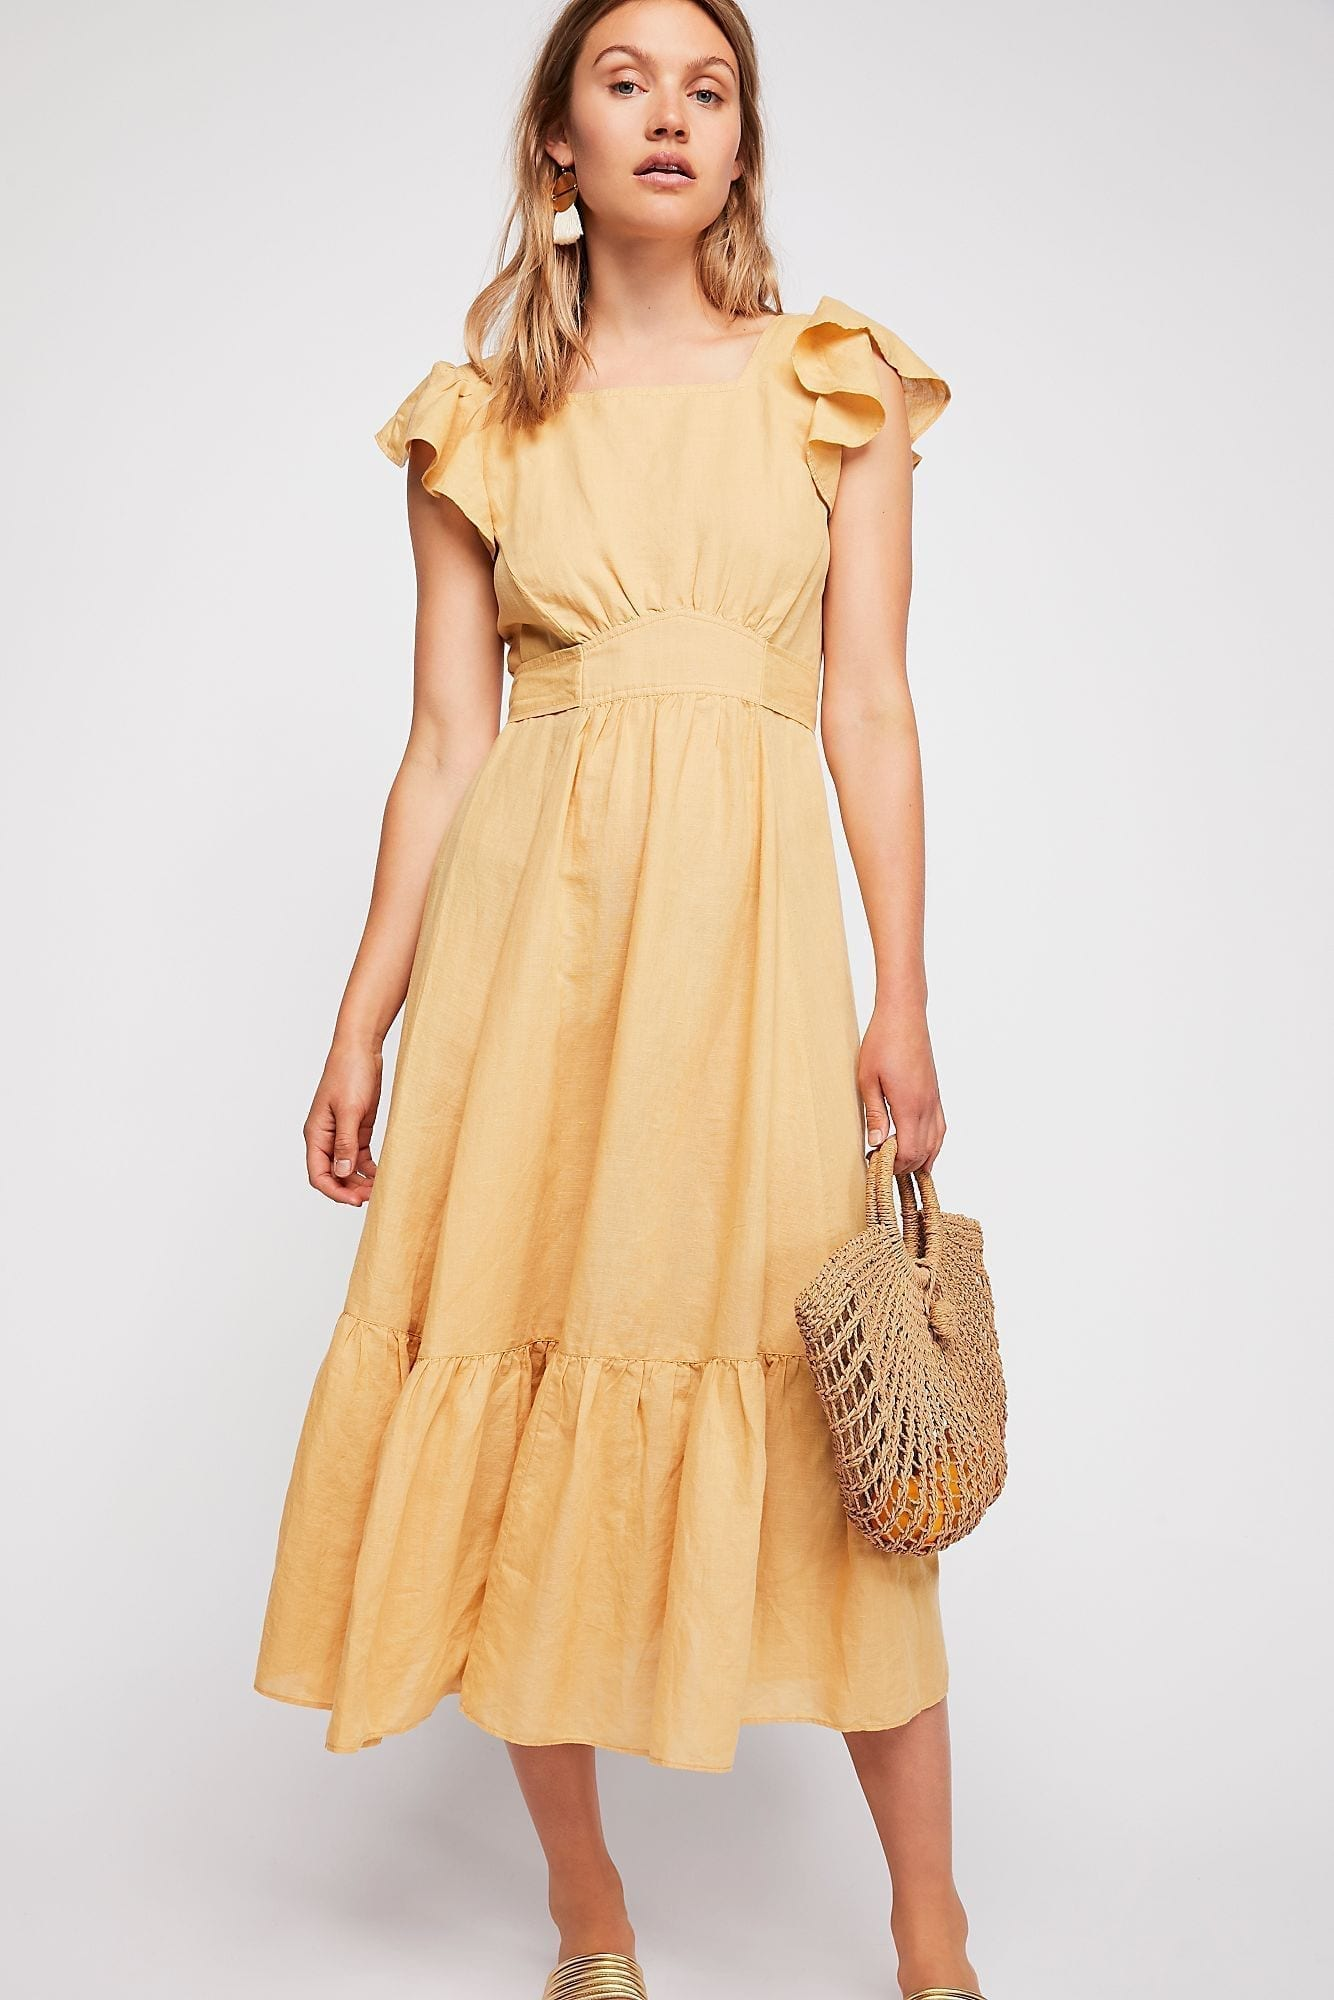 ENDLESS SUMMER Takin' A Chance Midi Yellow Dress